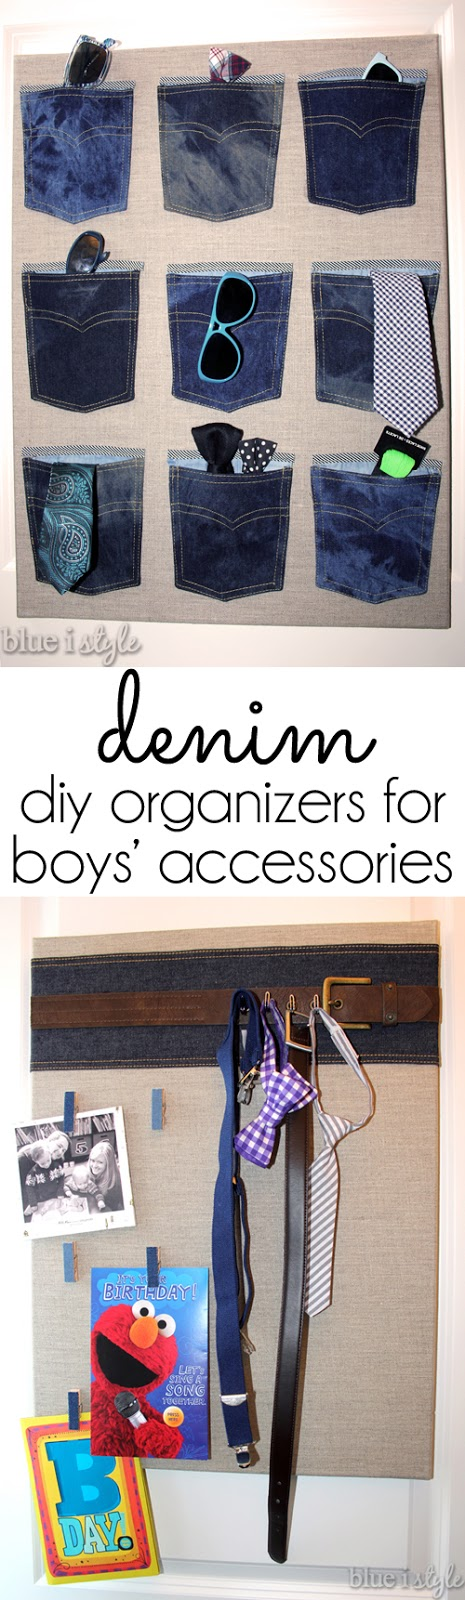 DIY menswear inspired organization for boy's room